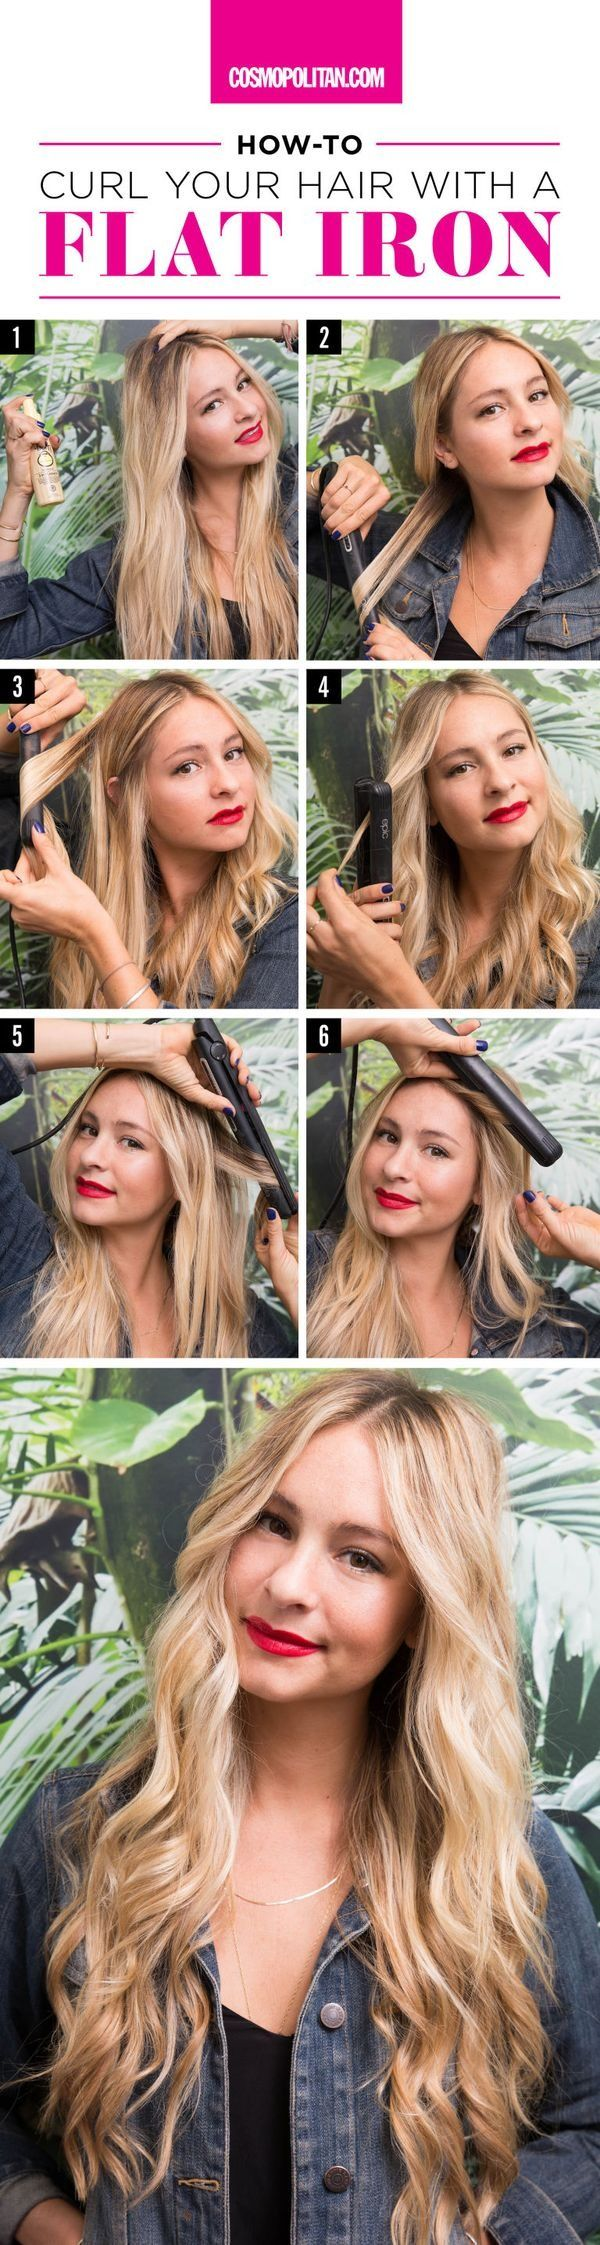 "If you roll your eyes at the thought of curling your hair with a flat iron, claiming ""it's just too hard to do,"" this step-by-step tutorial (and video!) by celebrity hairstylist and Scünci ambassador Laura Polko will help you perfect the technique."